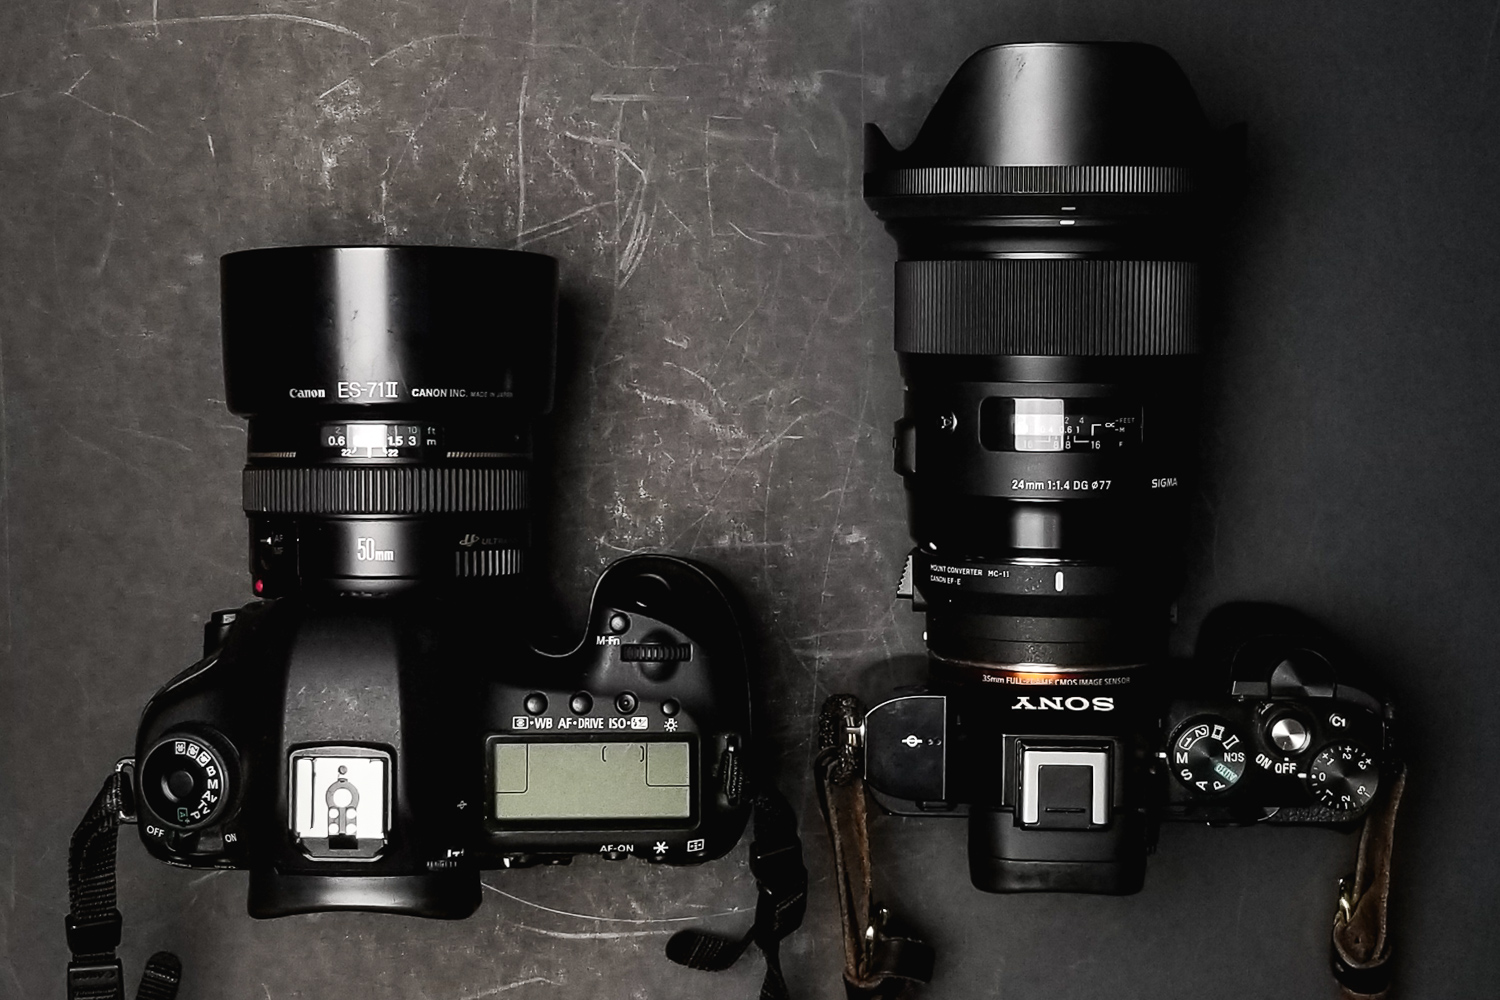 Image: A Canon 5D MK3 with a Canon 50mm F/1.8 lens (left) and a Sony A7R with an EF 24mm f/1.4 Sigma...